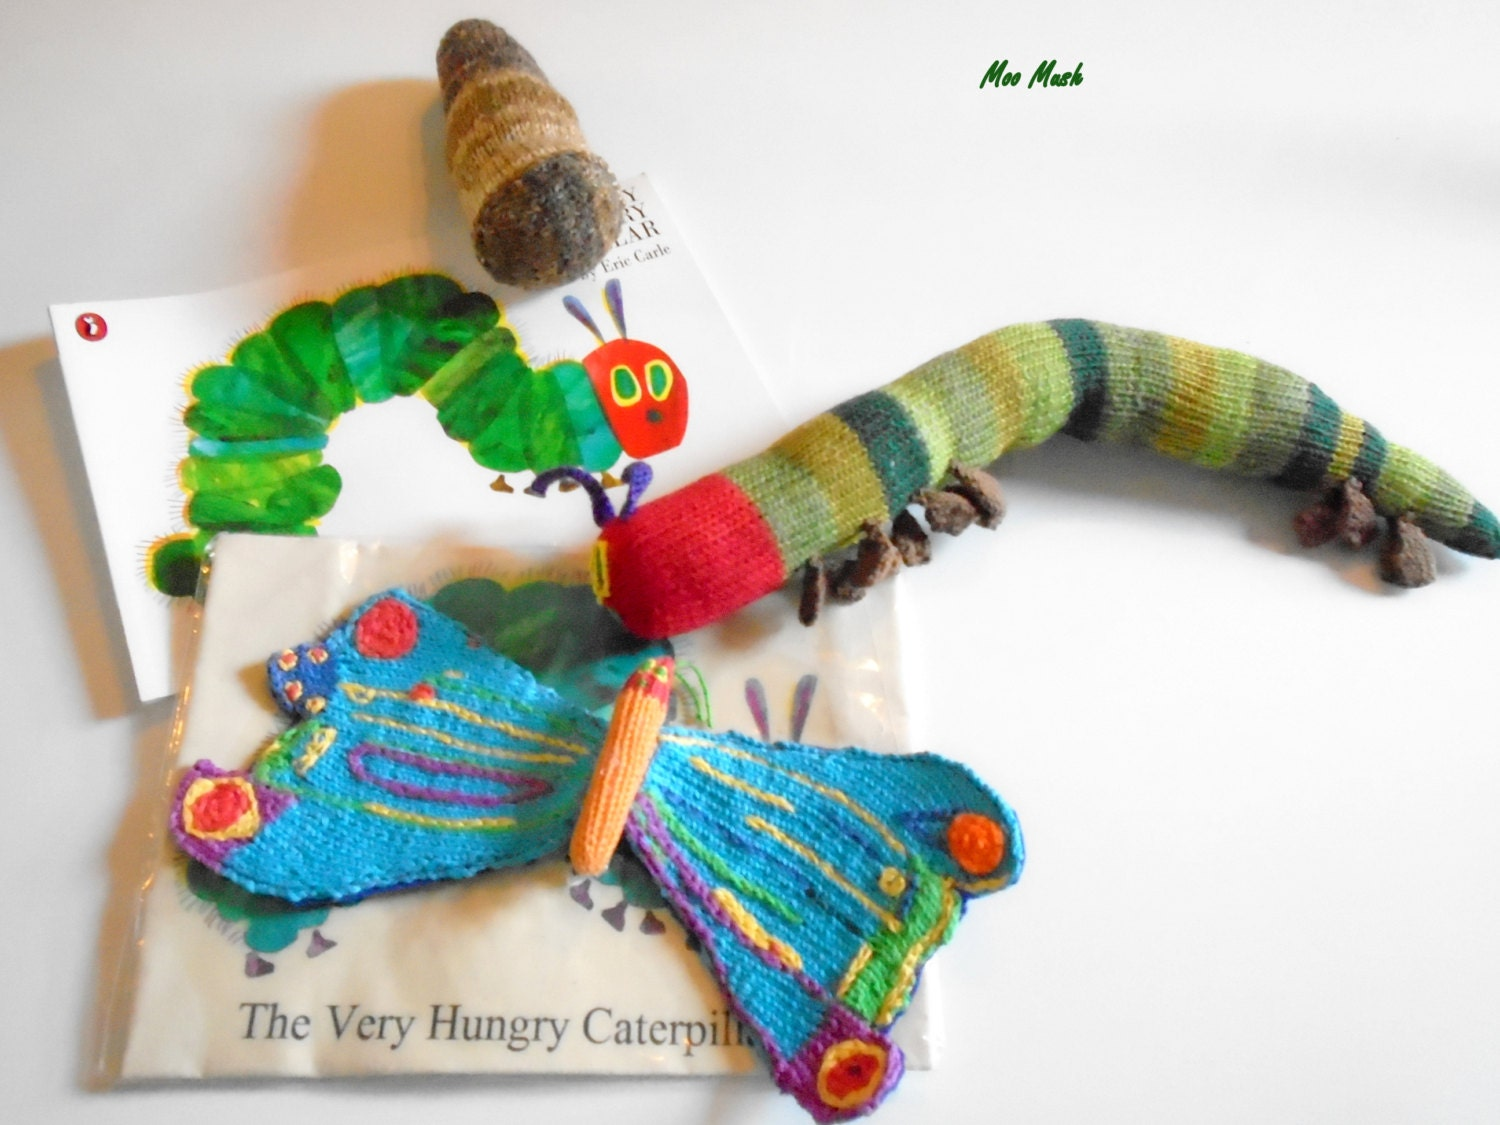 Knitting Pattern For Very Hungry Caterpillar Toy : The Very Hungry Caterpillar Soft Hand Knitted Toy with